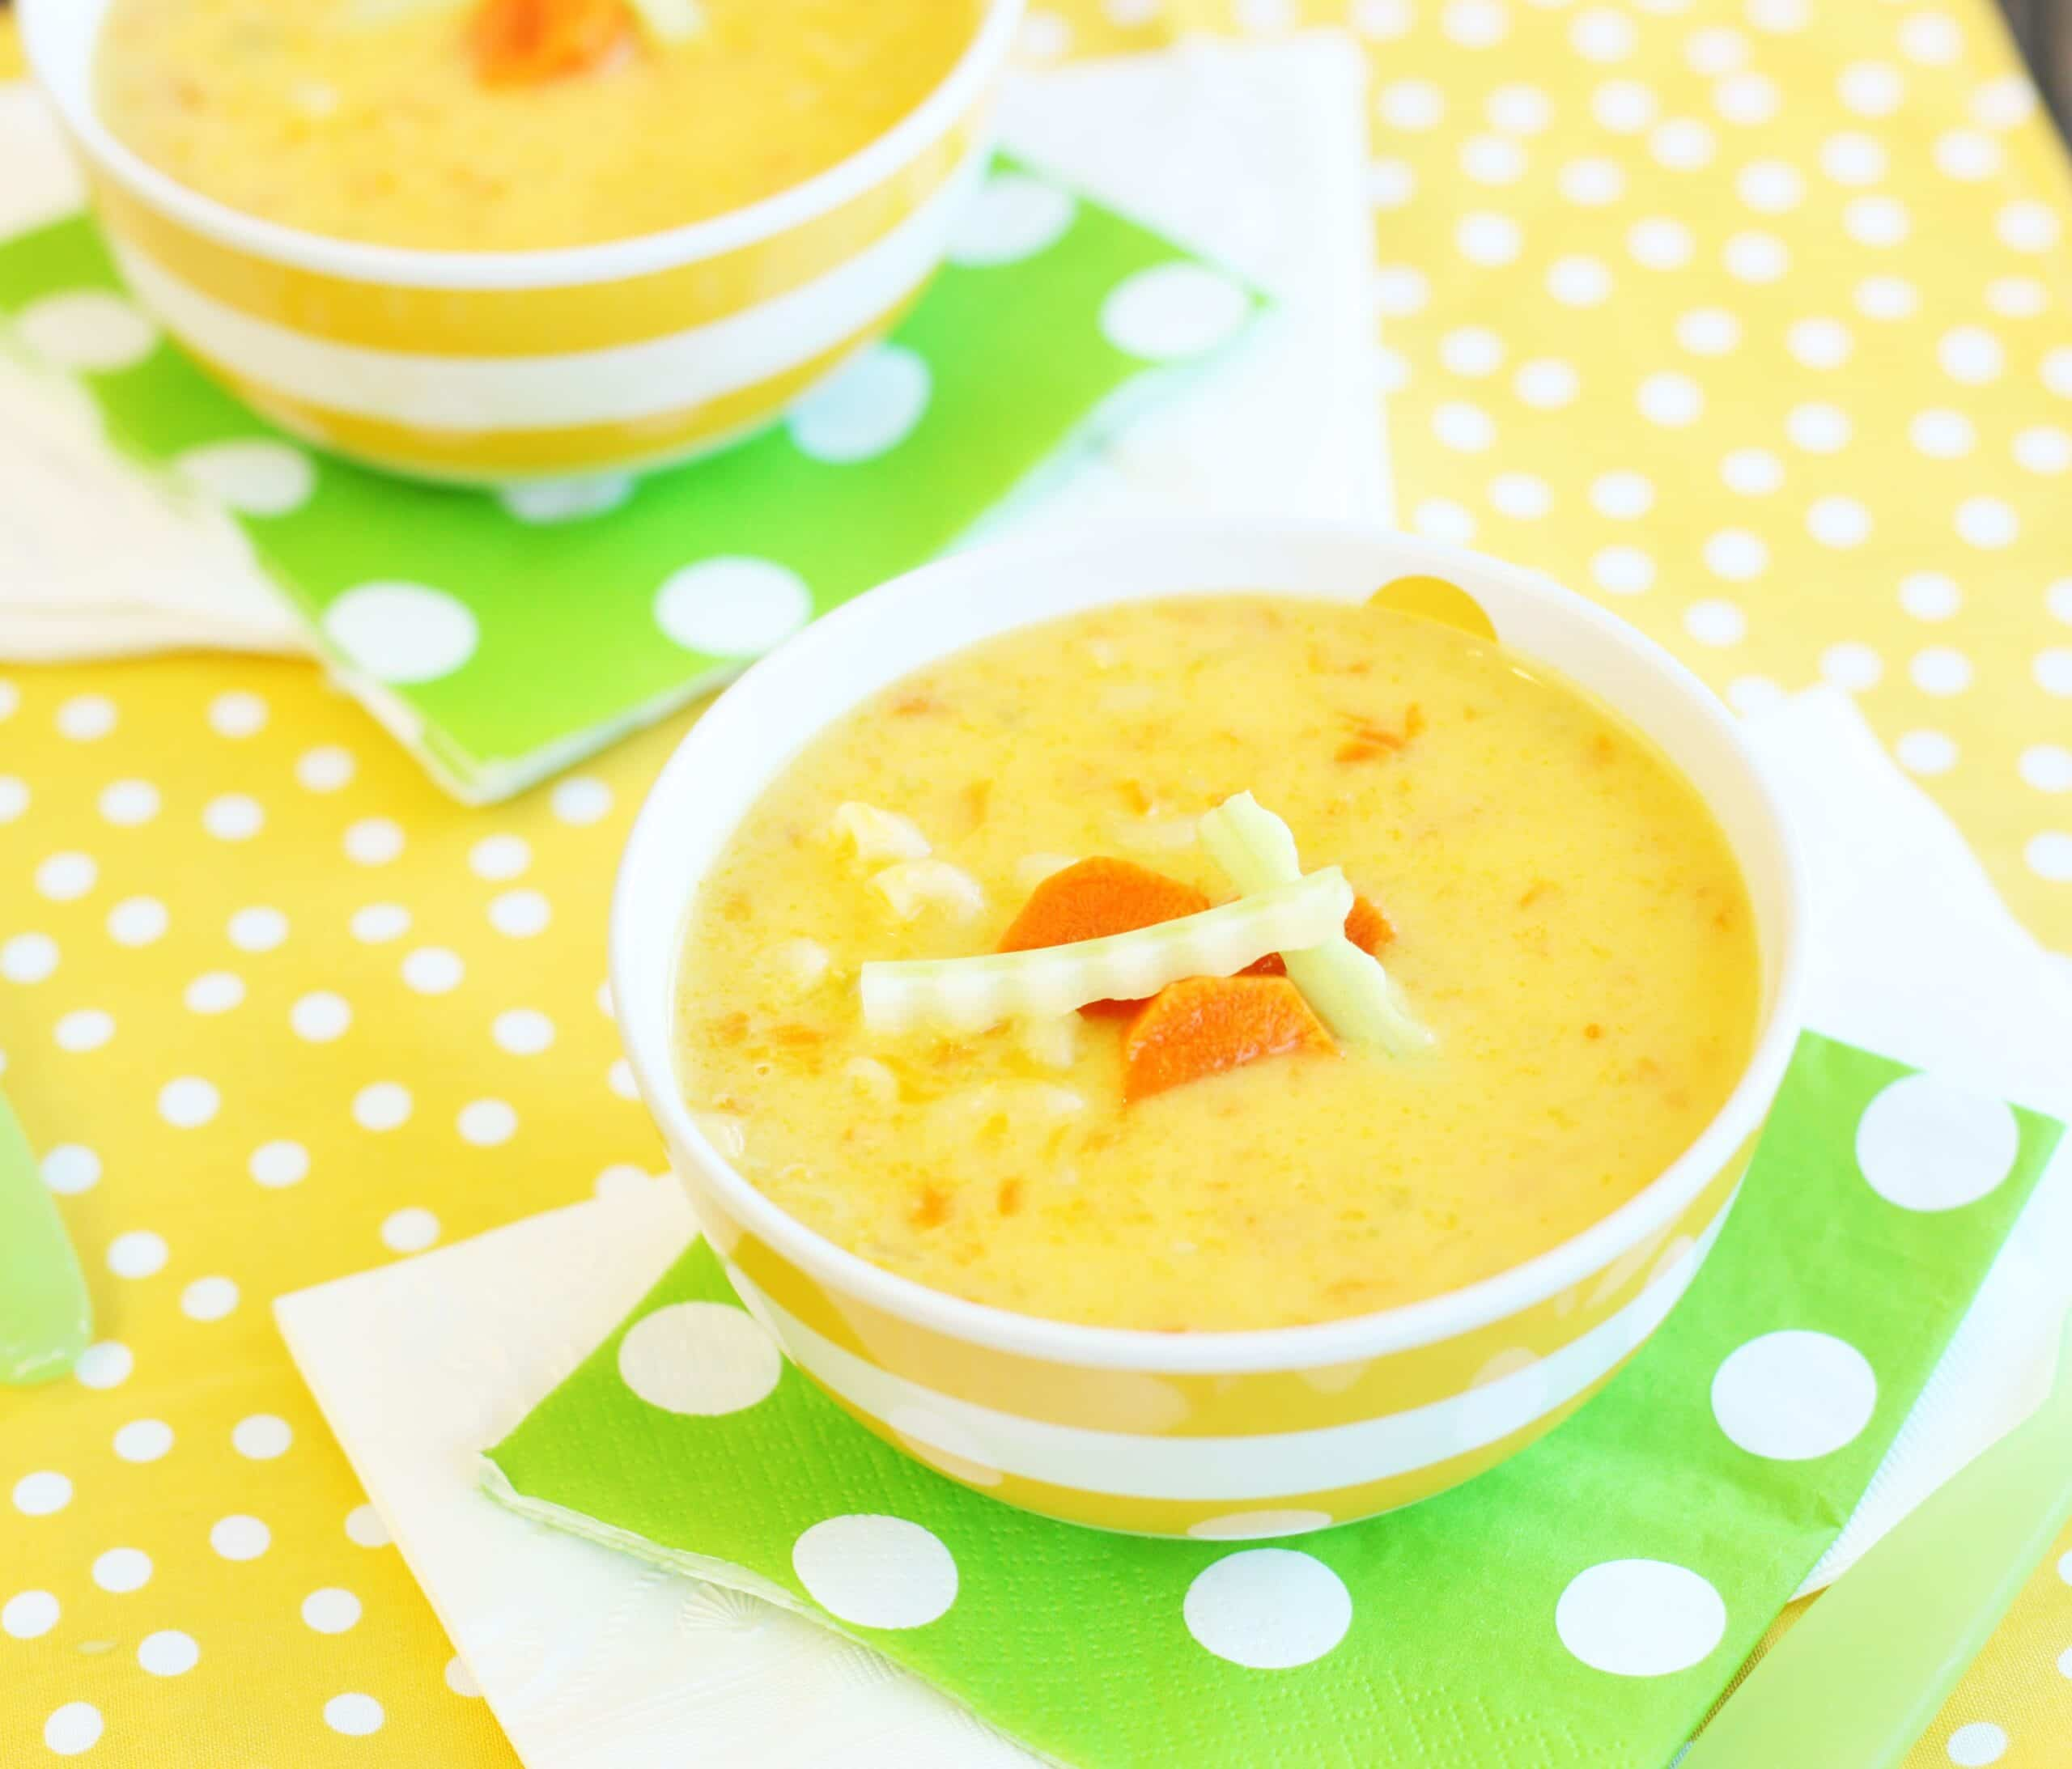 ... soup with the kid factor of mac and cheese, but the added bonus of